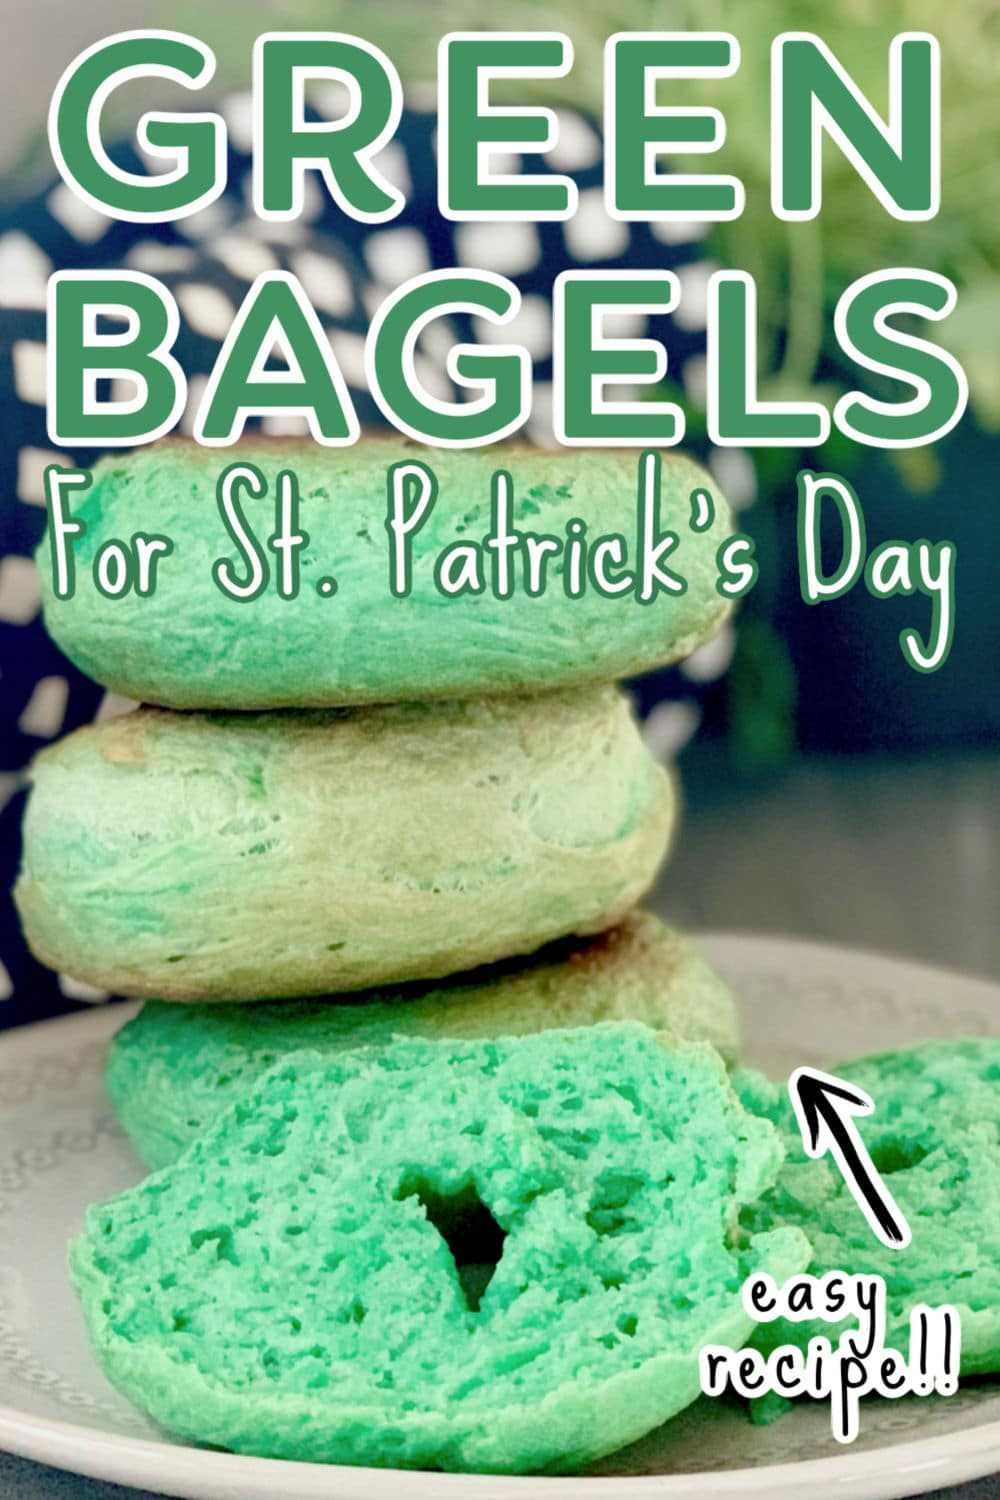 Green Bagels for St. Patrick's Day Tutorial